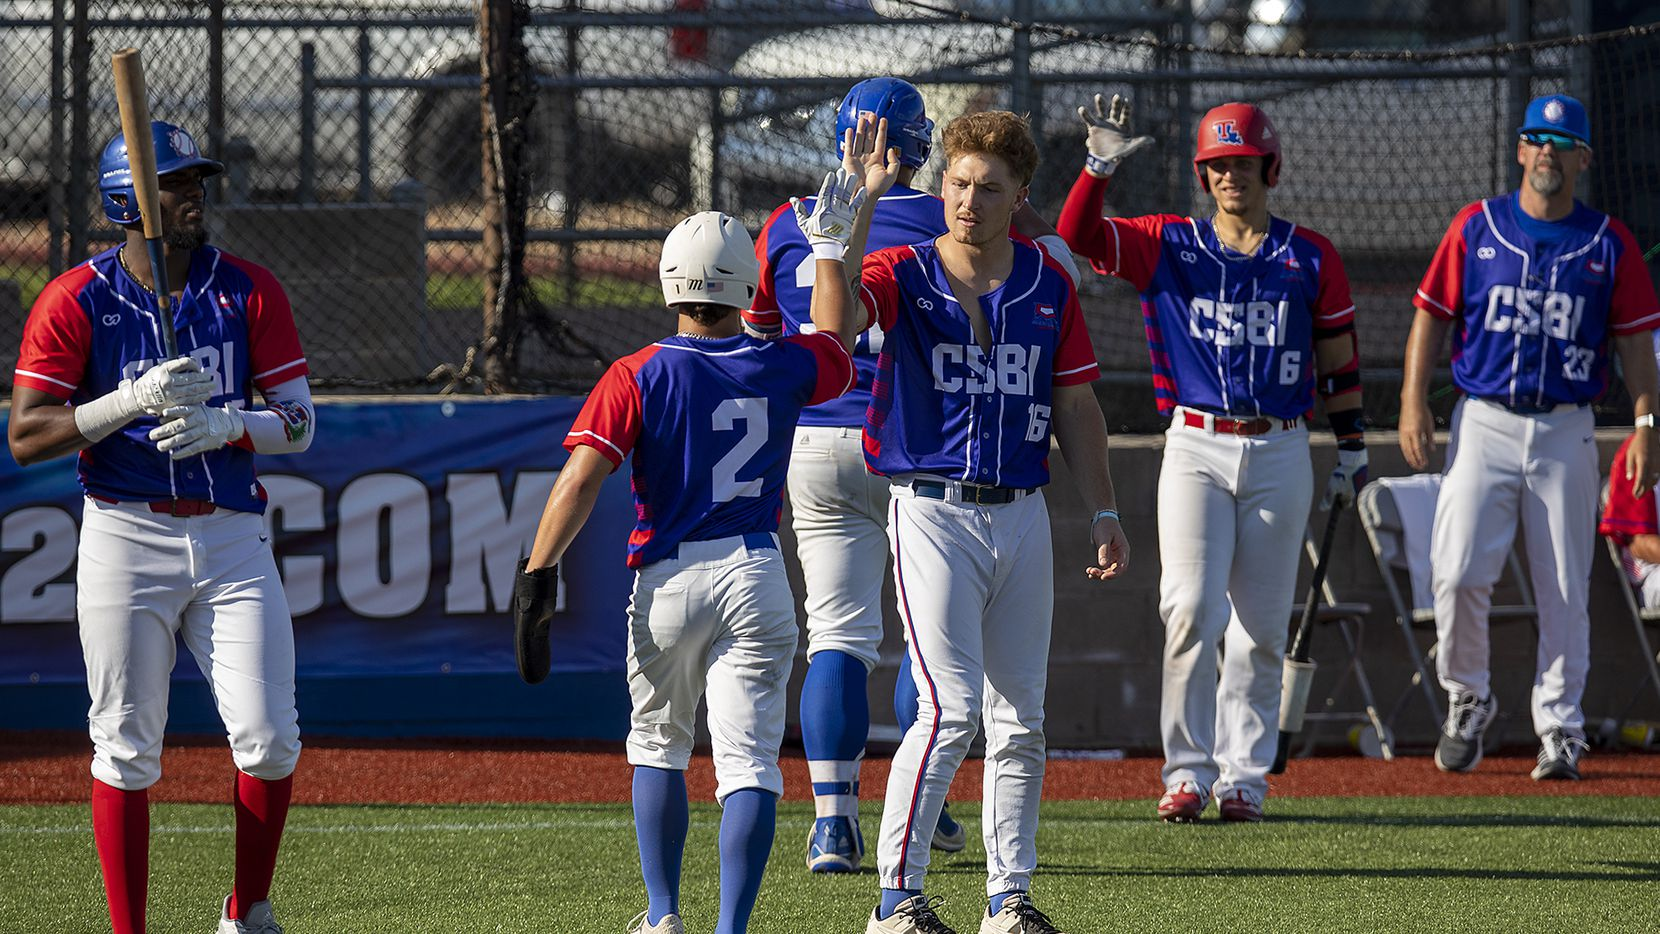 Independence's Nolan Tucker (2) (Valparaiso) celebrates with teammate Buddy Dewaine (16) (Central Connecticut State) after scoring a run during game action of the College Summer Baseball Invitational tournament against Unity at Travis Field in Bryan, Texas, Friday, June 5, 2020.